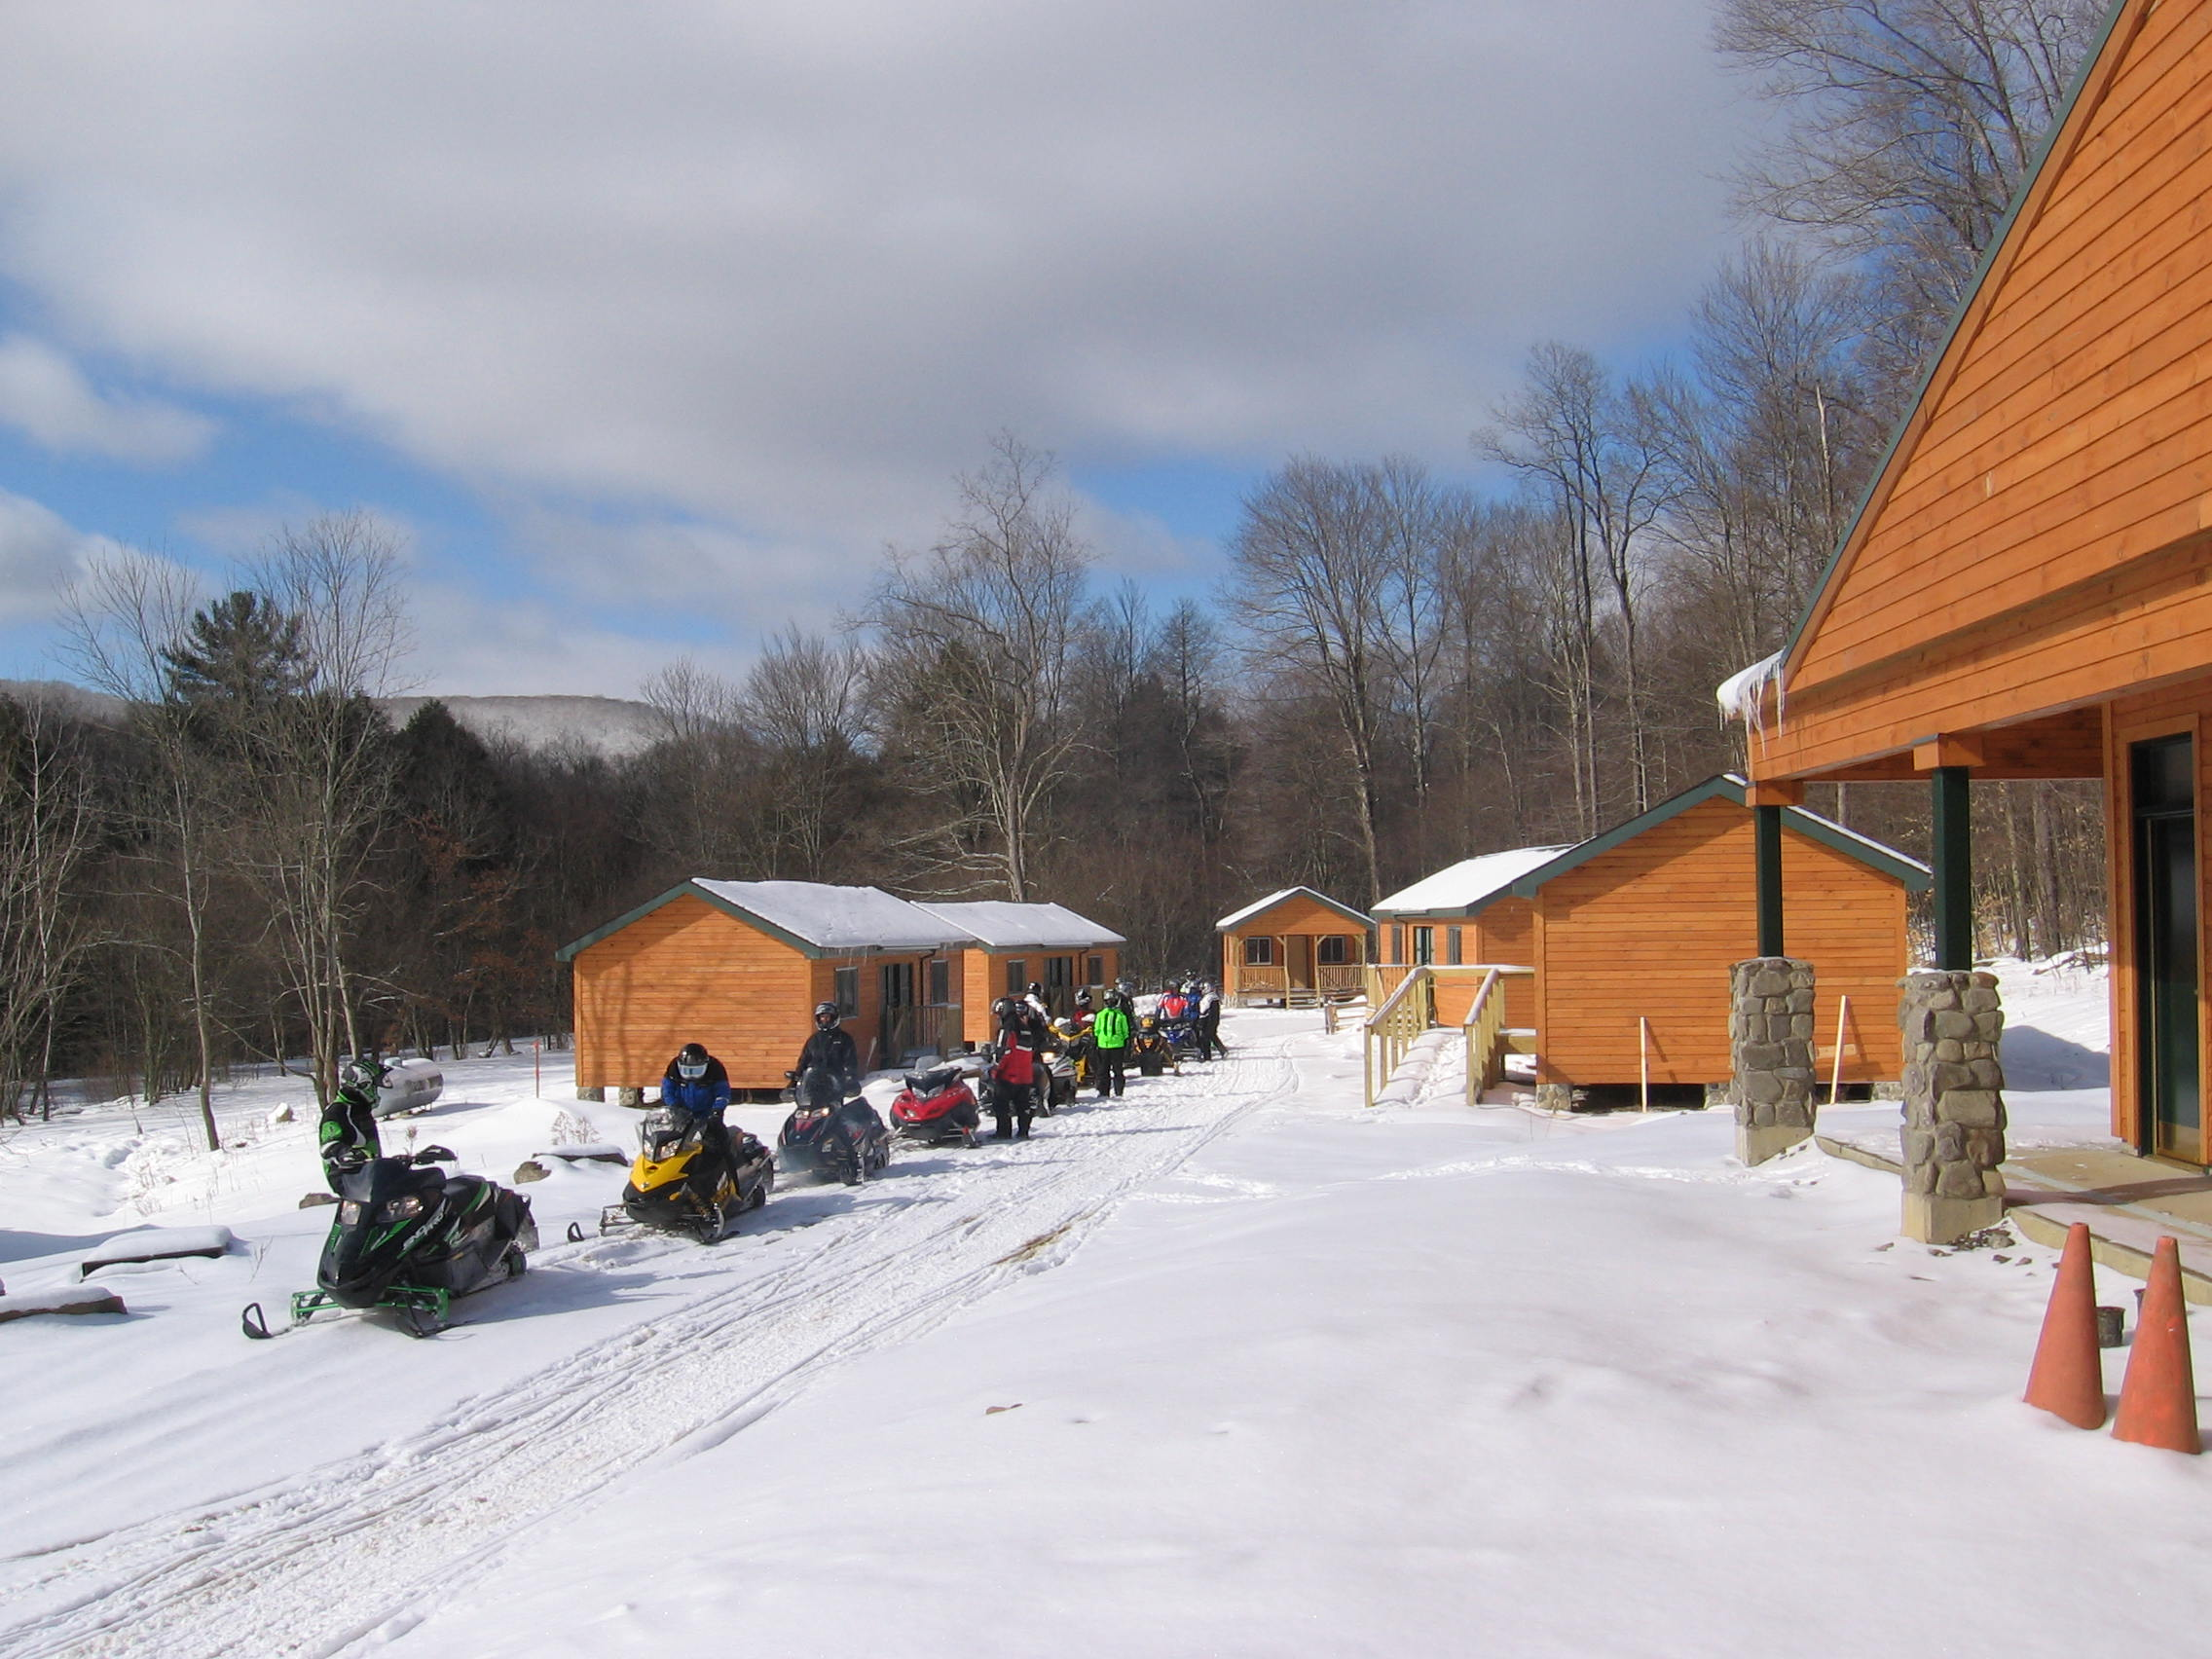 Allegany State Park S Group Camp 5 In Salamanca